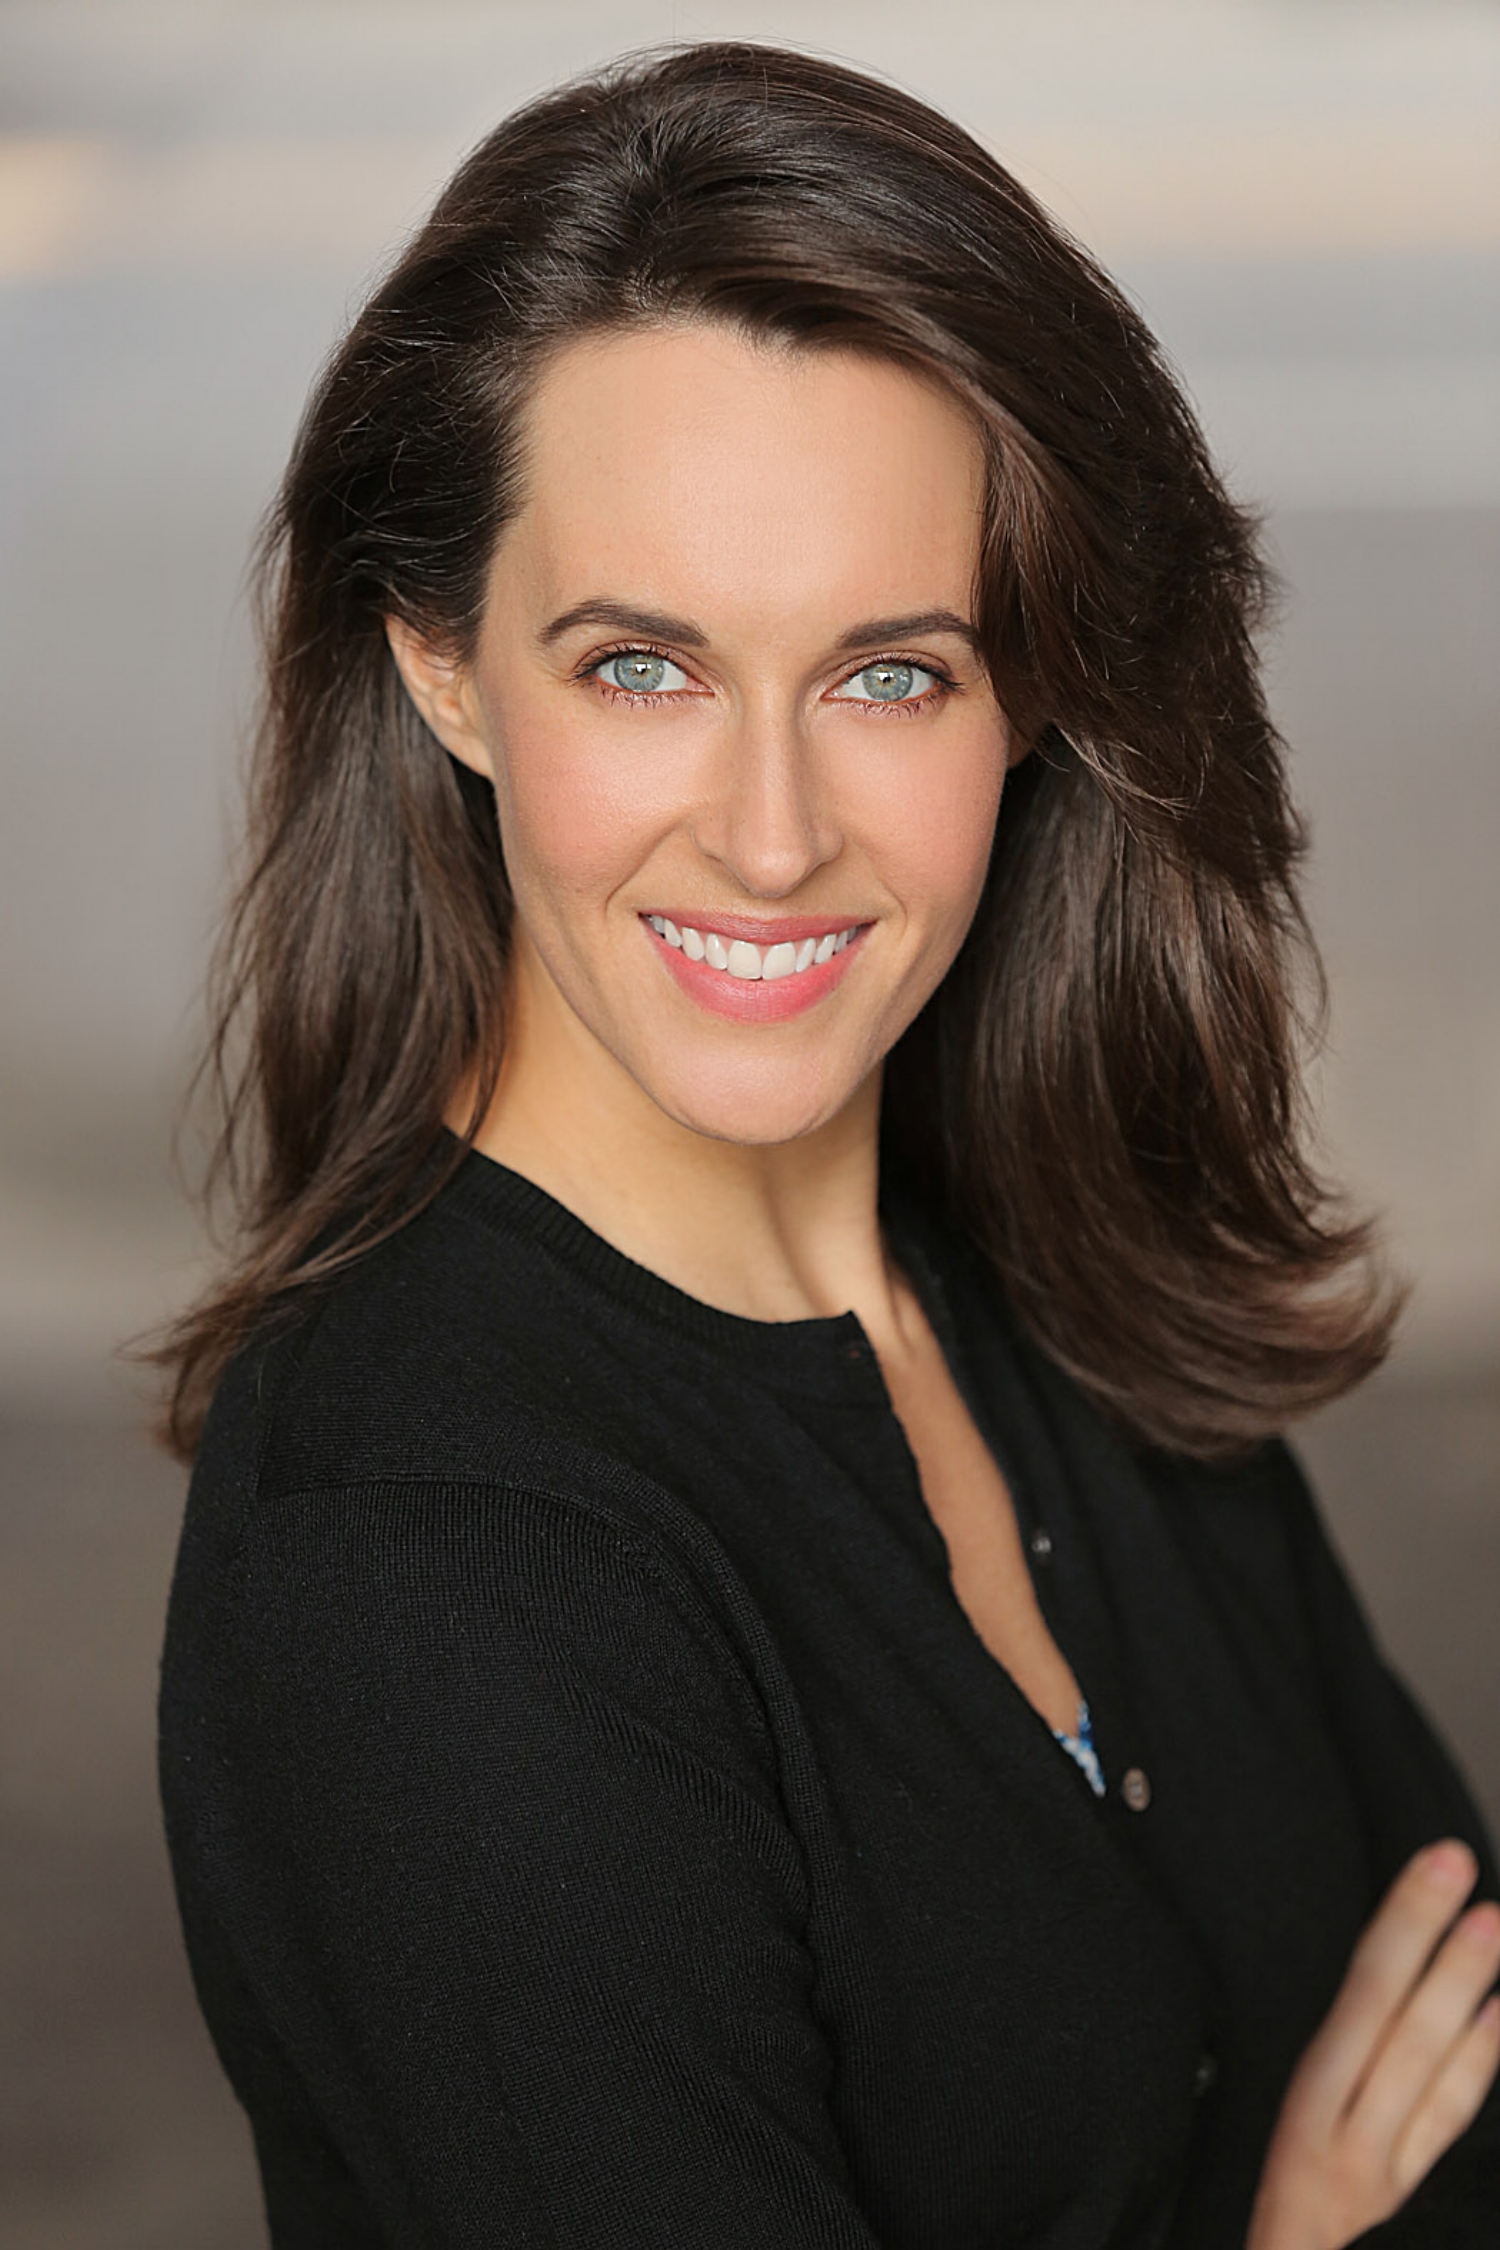 Jenna Edwards commercial actor